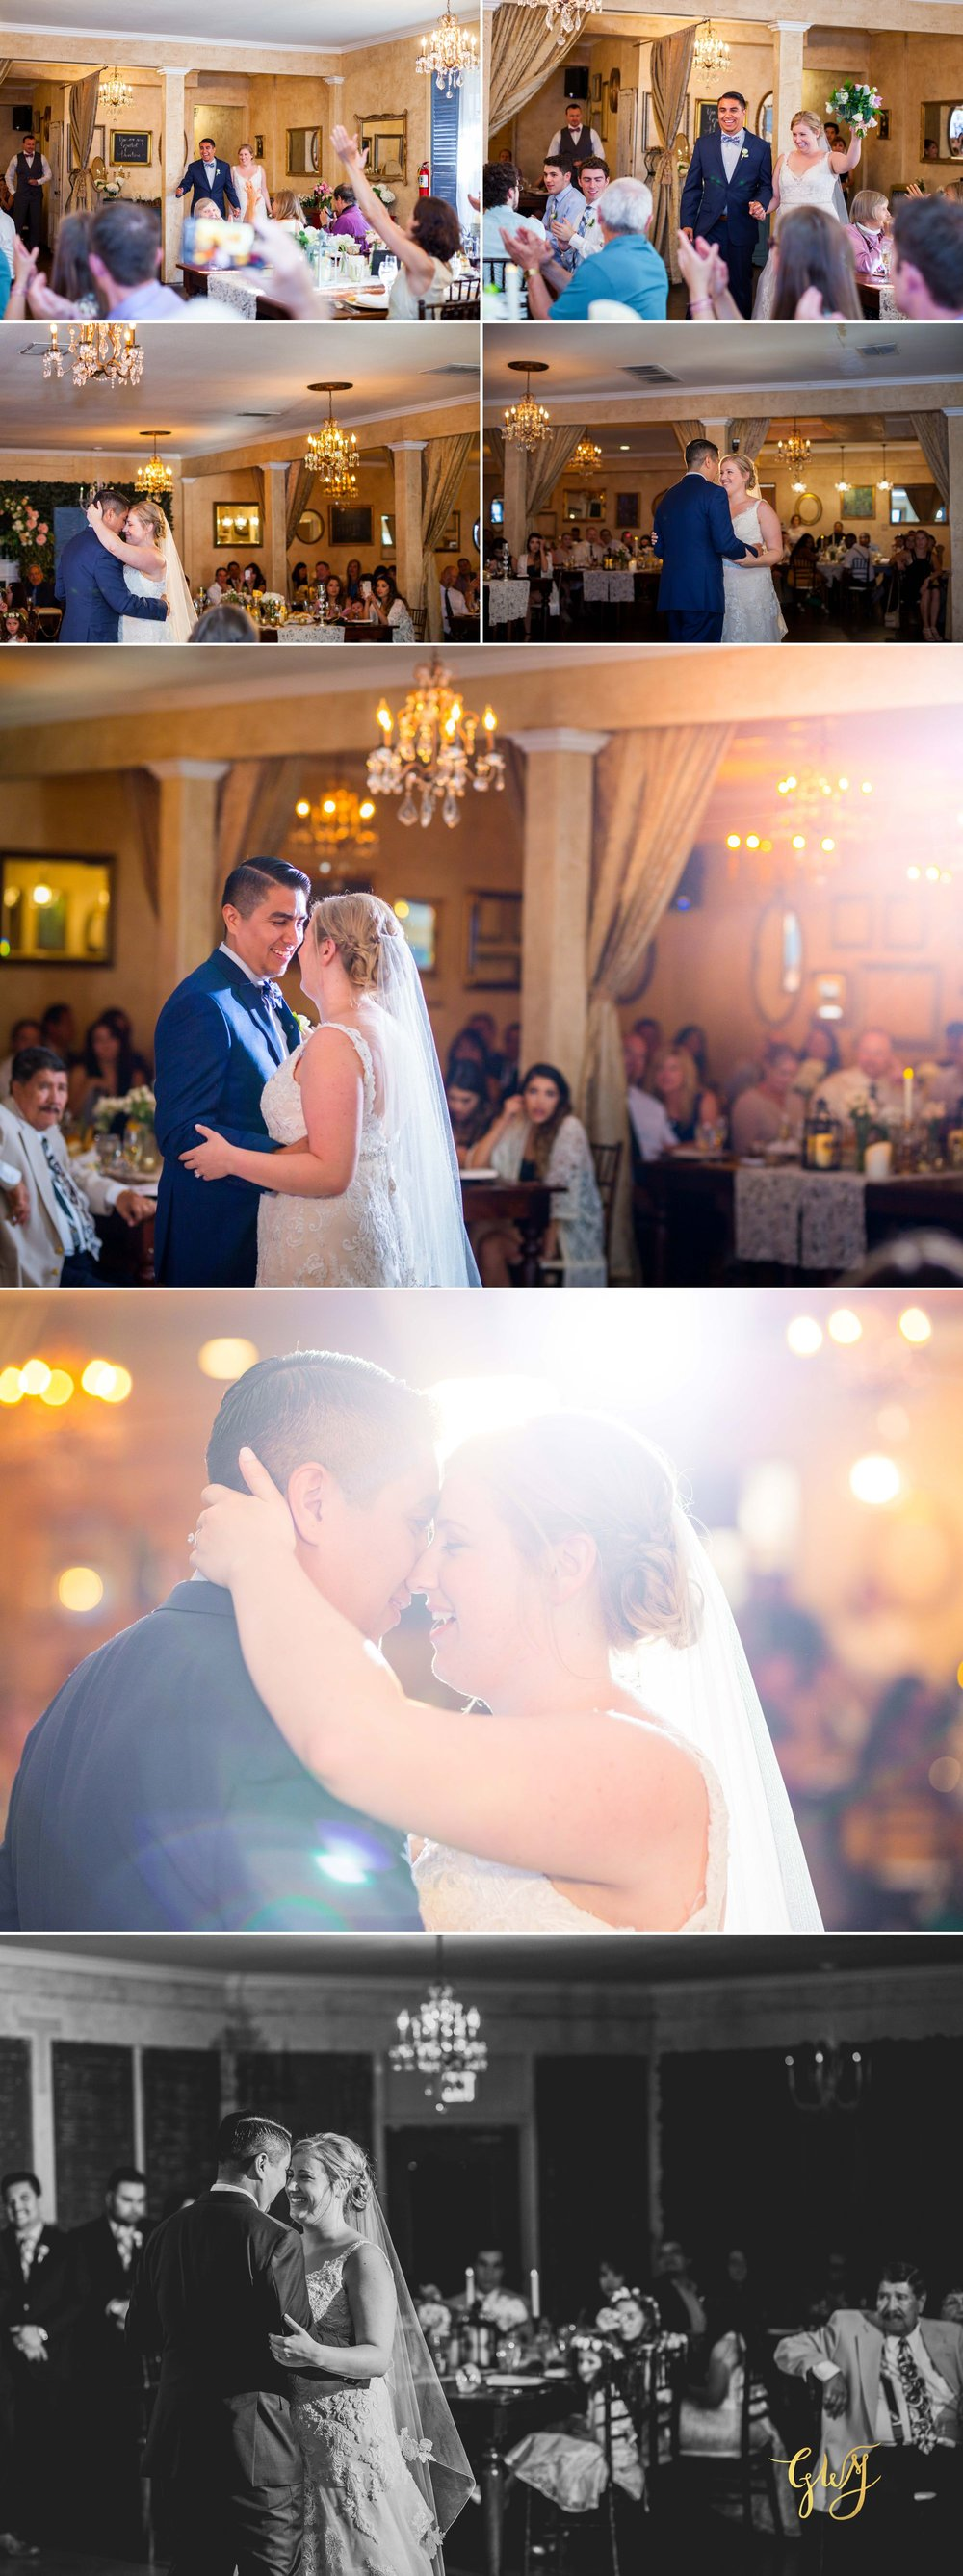 Javier + Kari Avenue of the Arts First Look Vintage Rose Wedding Ceremony Reception by Glass Woods Media 21.jpg